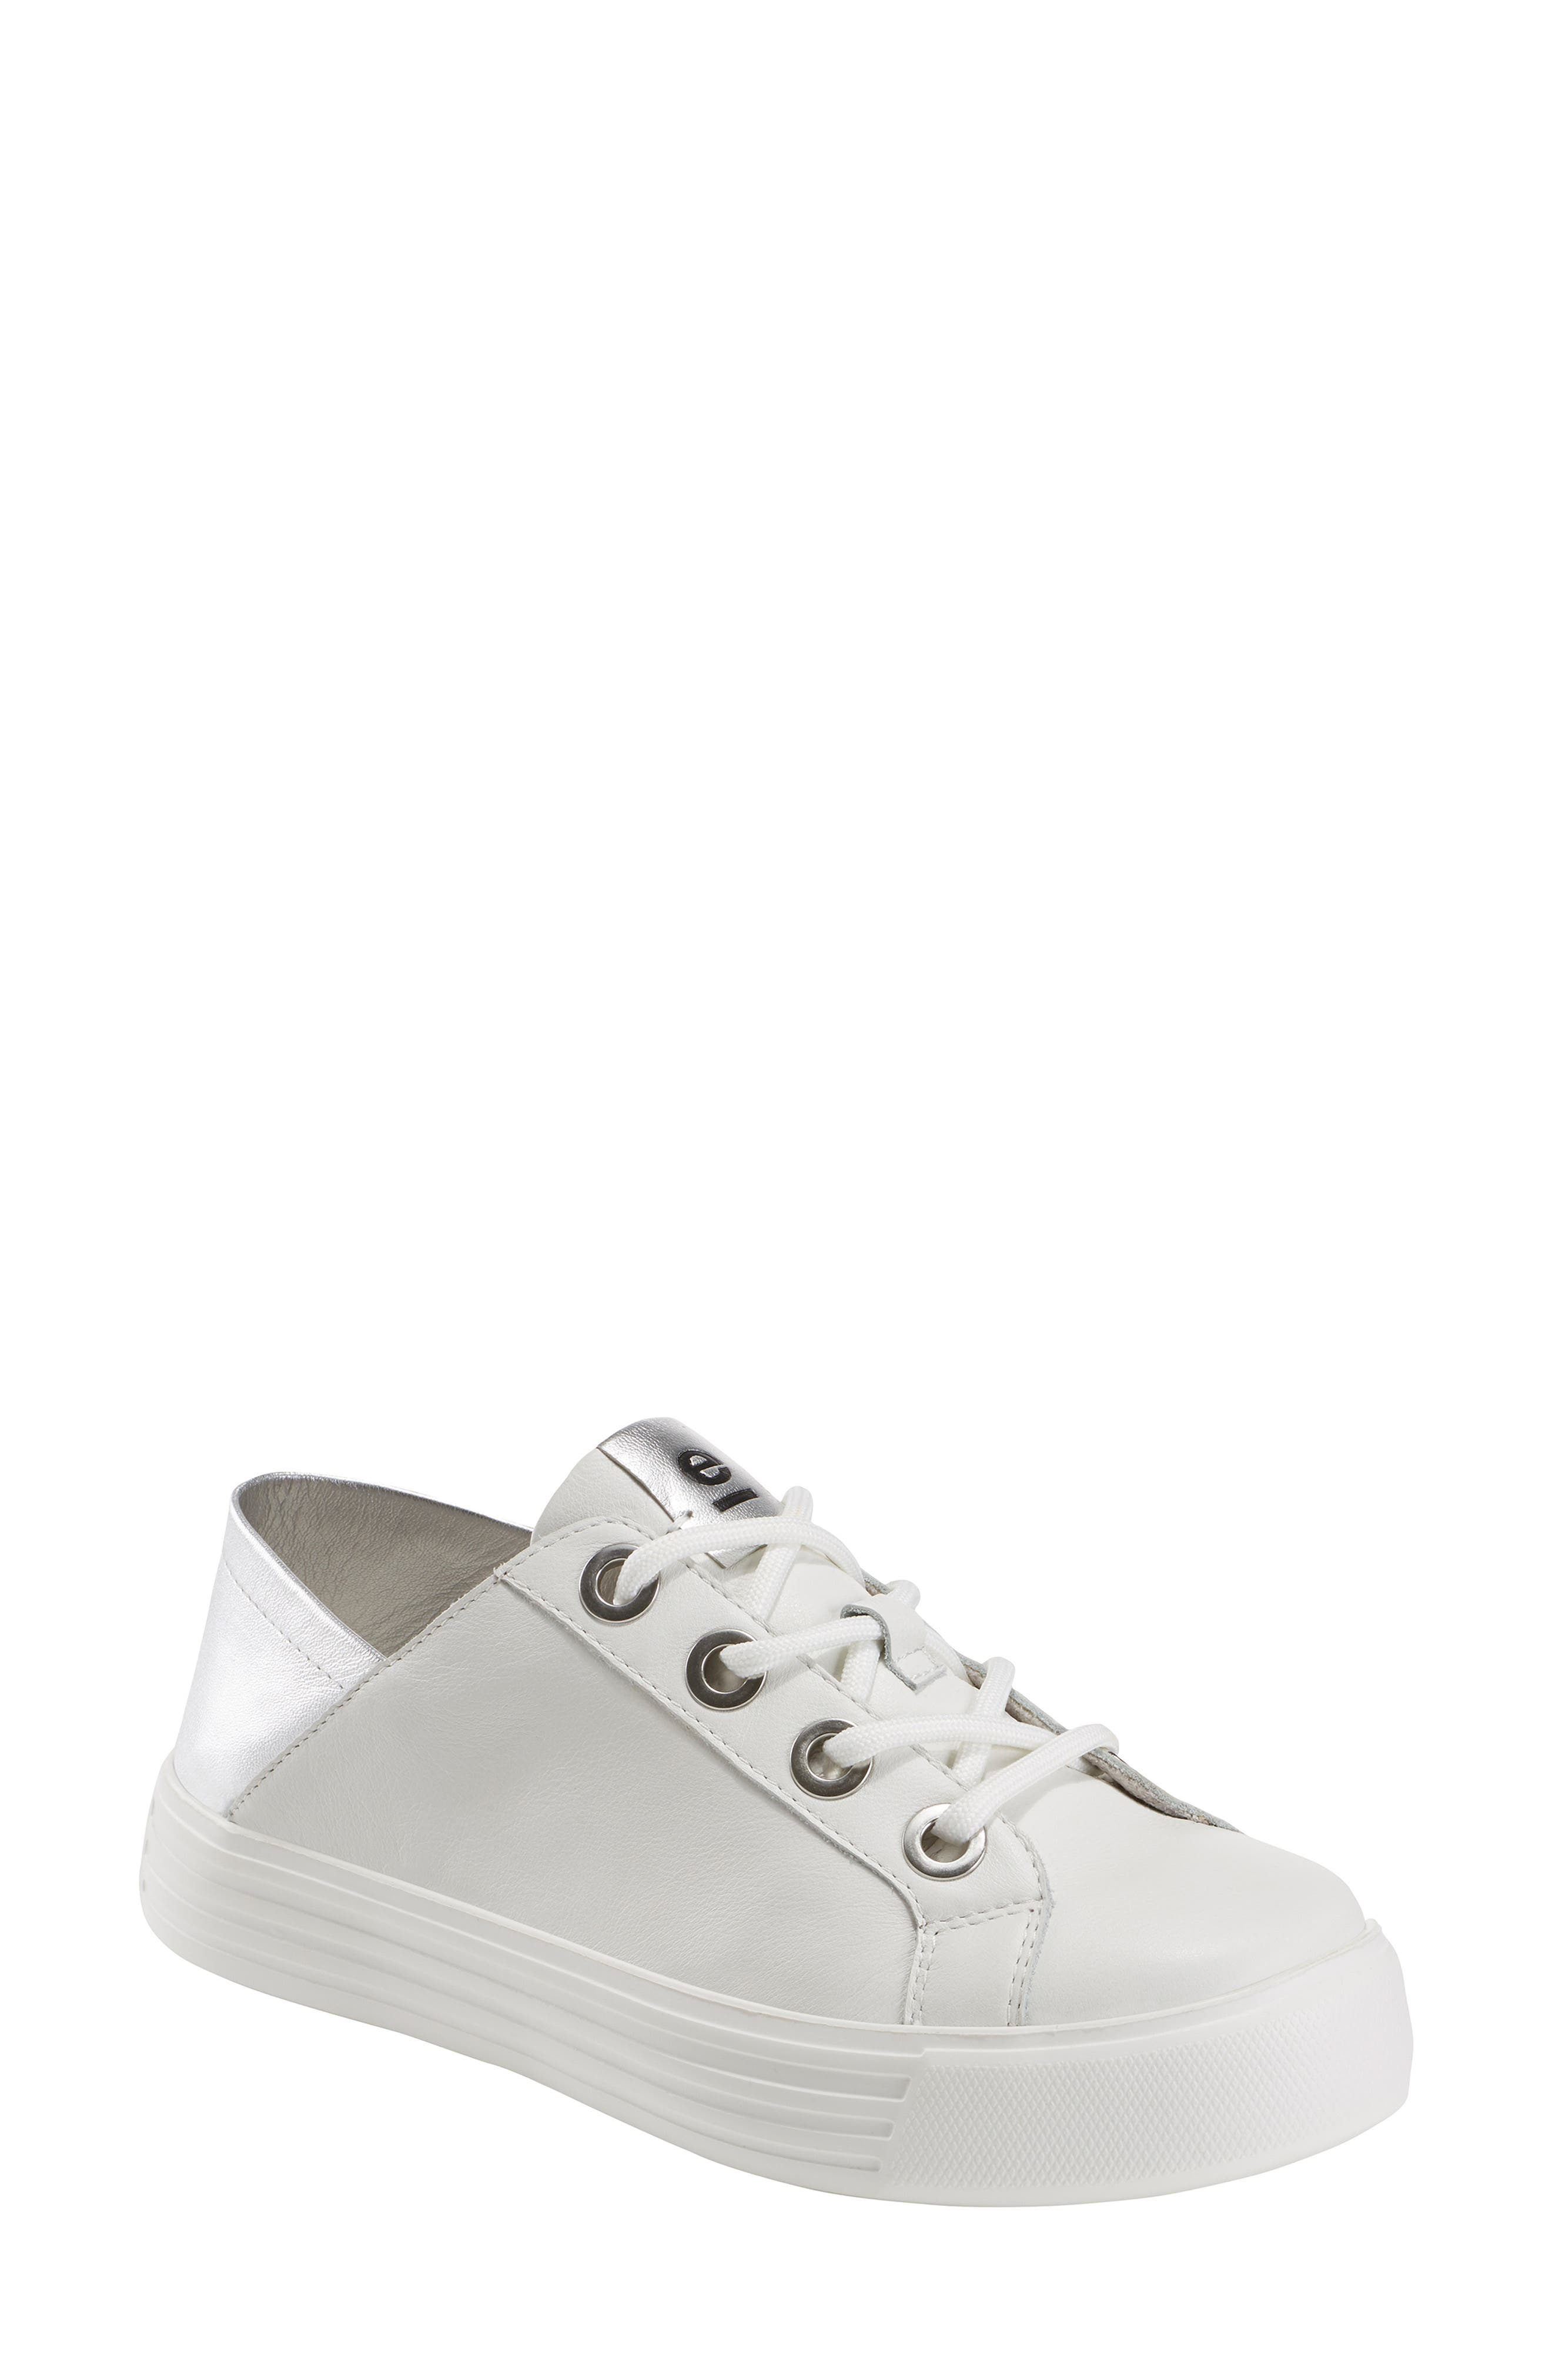 Earth Cedarwood Convertible Sneaker- White